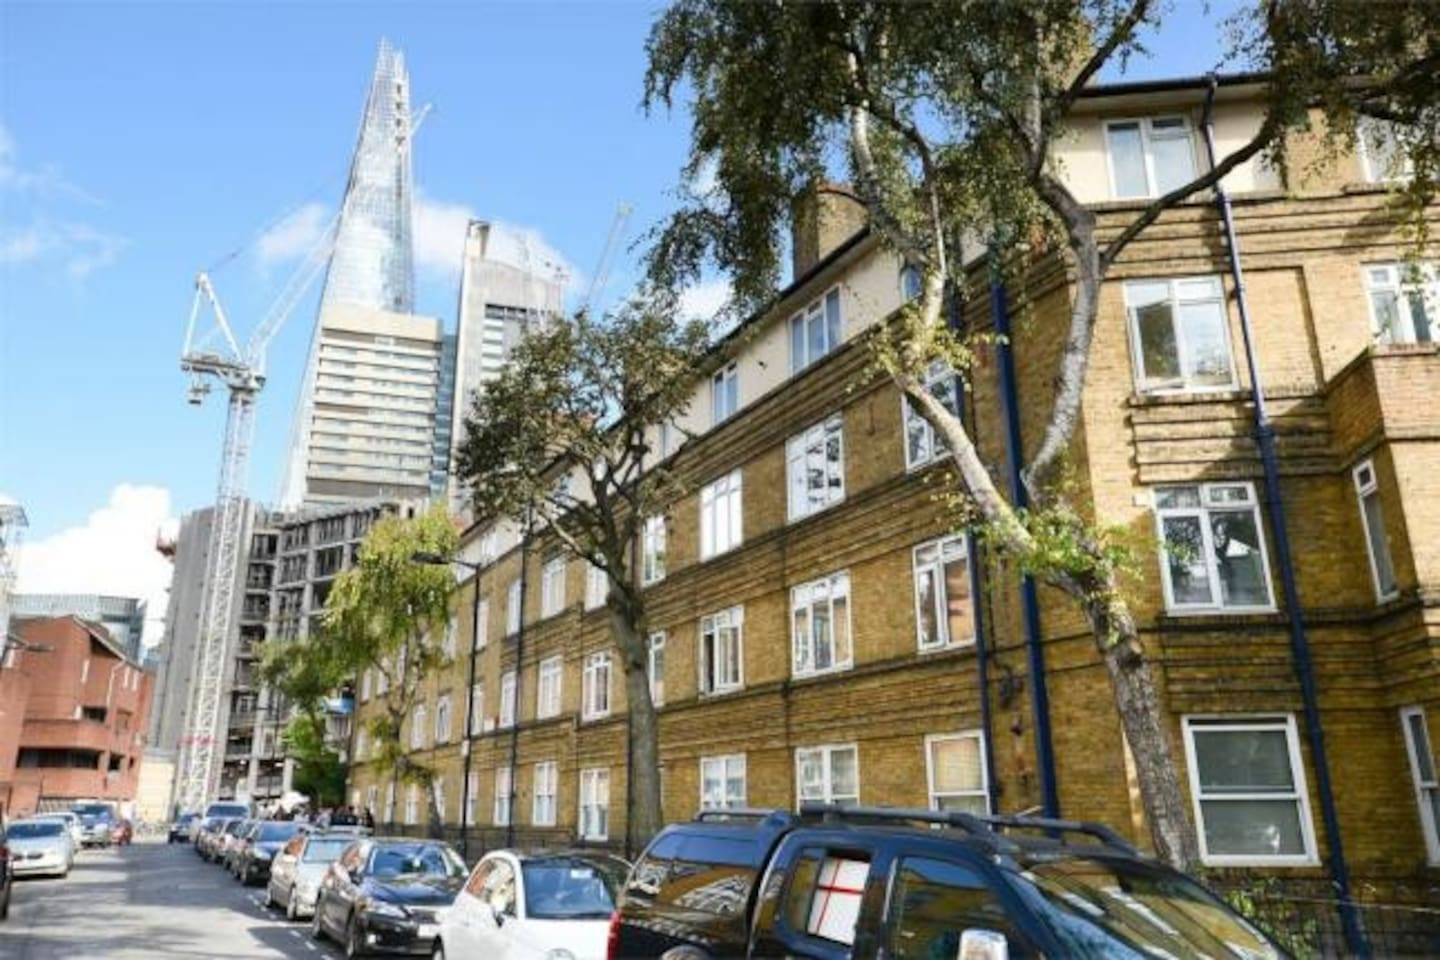 The flat is on a quiet residential street minutes from The Shard